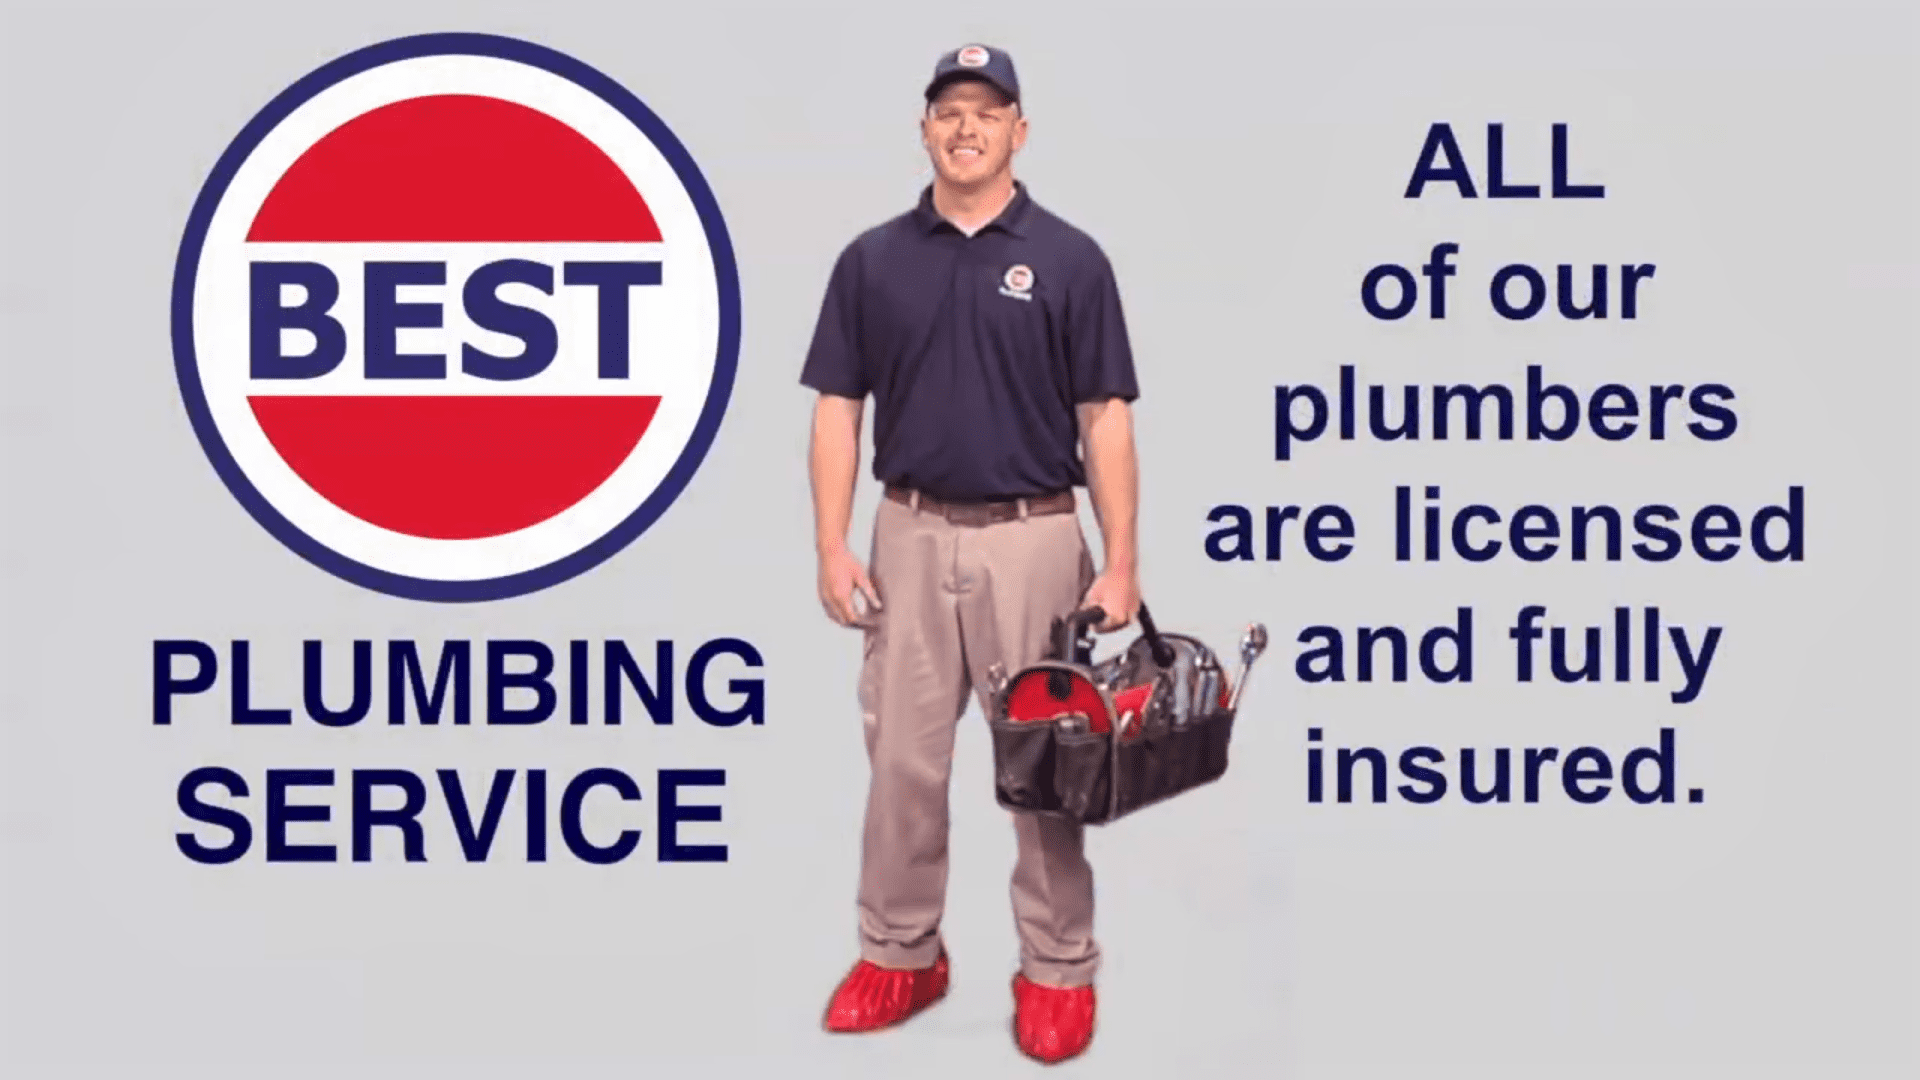 All our plumbers are licenced and fully insured